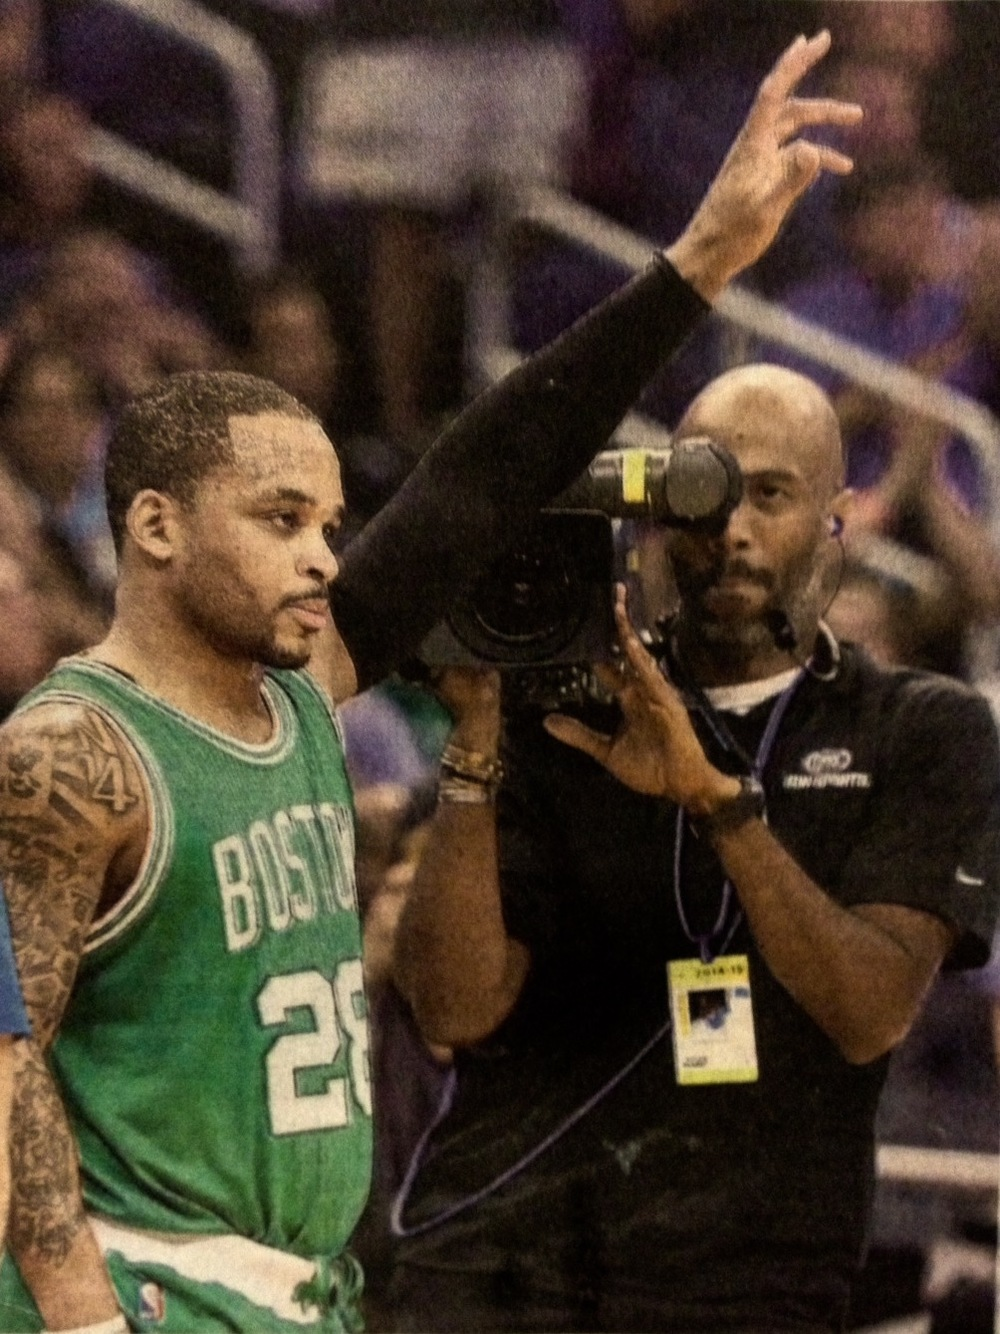 Clem Harrod, Sports Videographer (right) filming Jameer Nelson, Boston Celtics Point Guard (left)